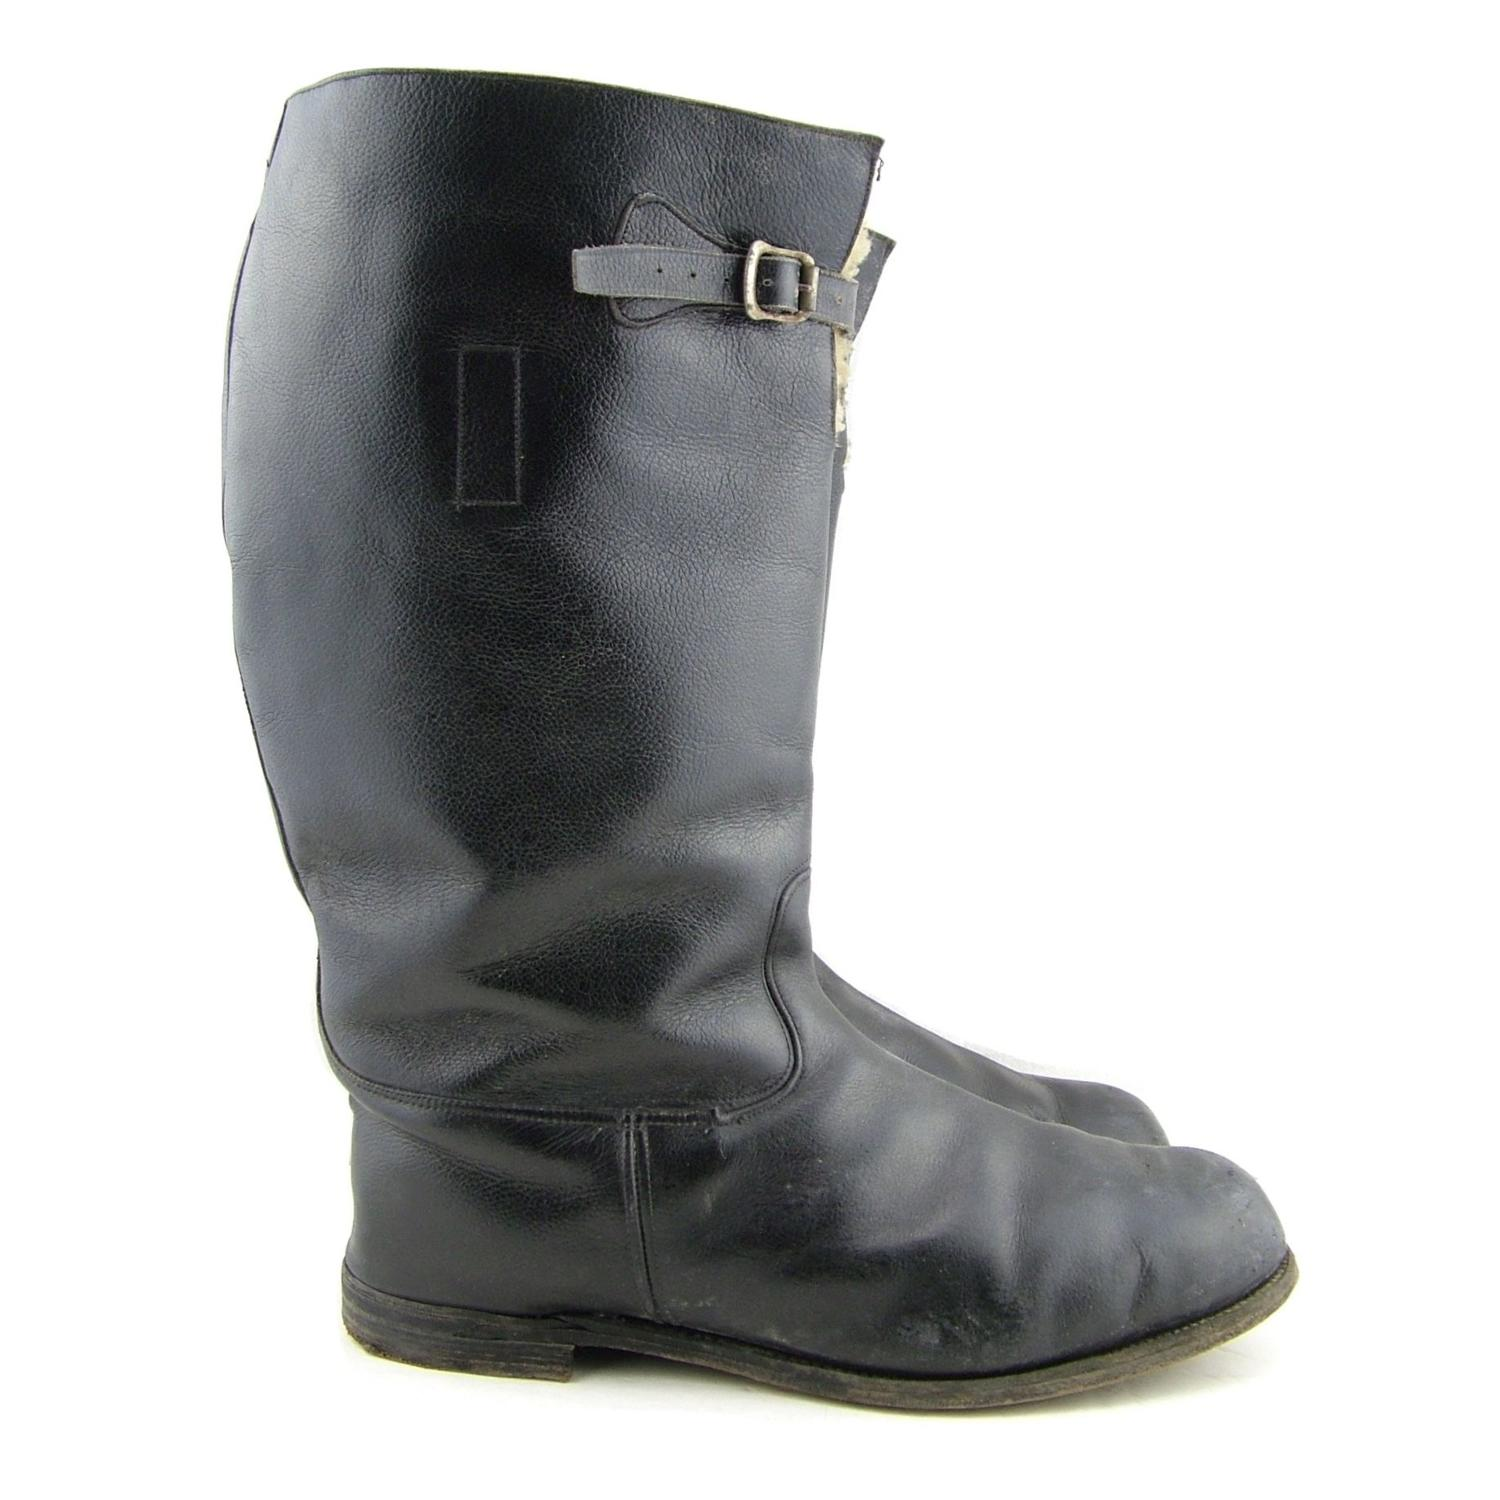 RAF 'private purchase' 1936 pattern flying boots